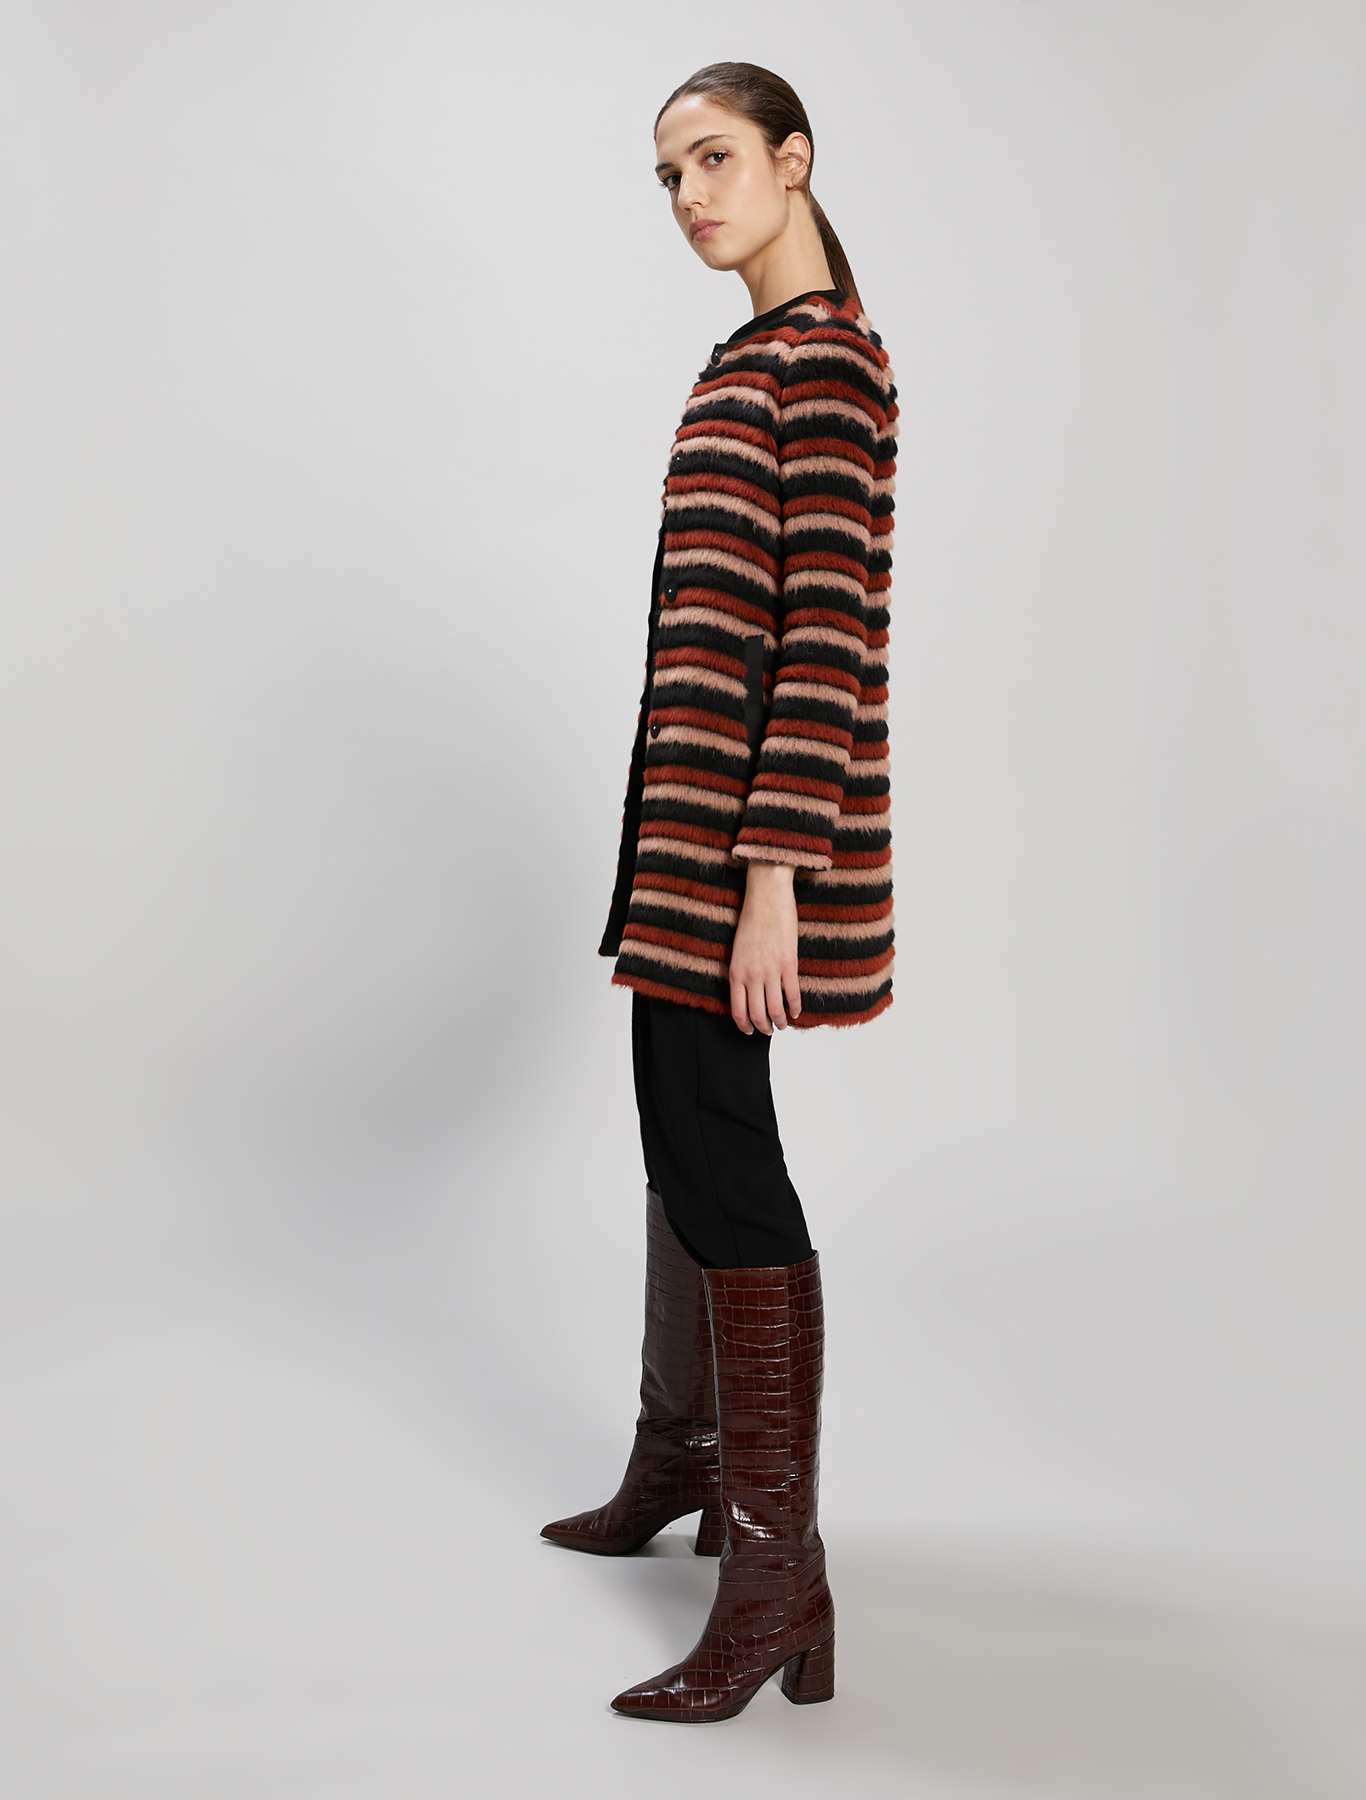 3D striped coat - cocoa pattern - pennyblack